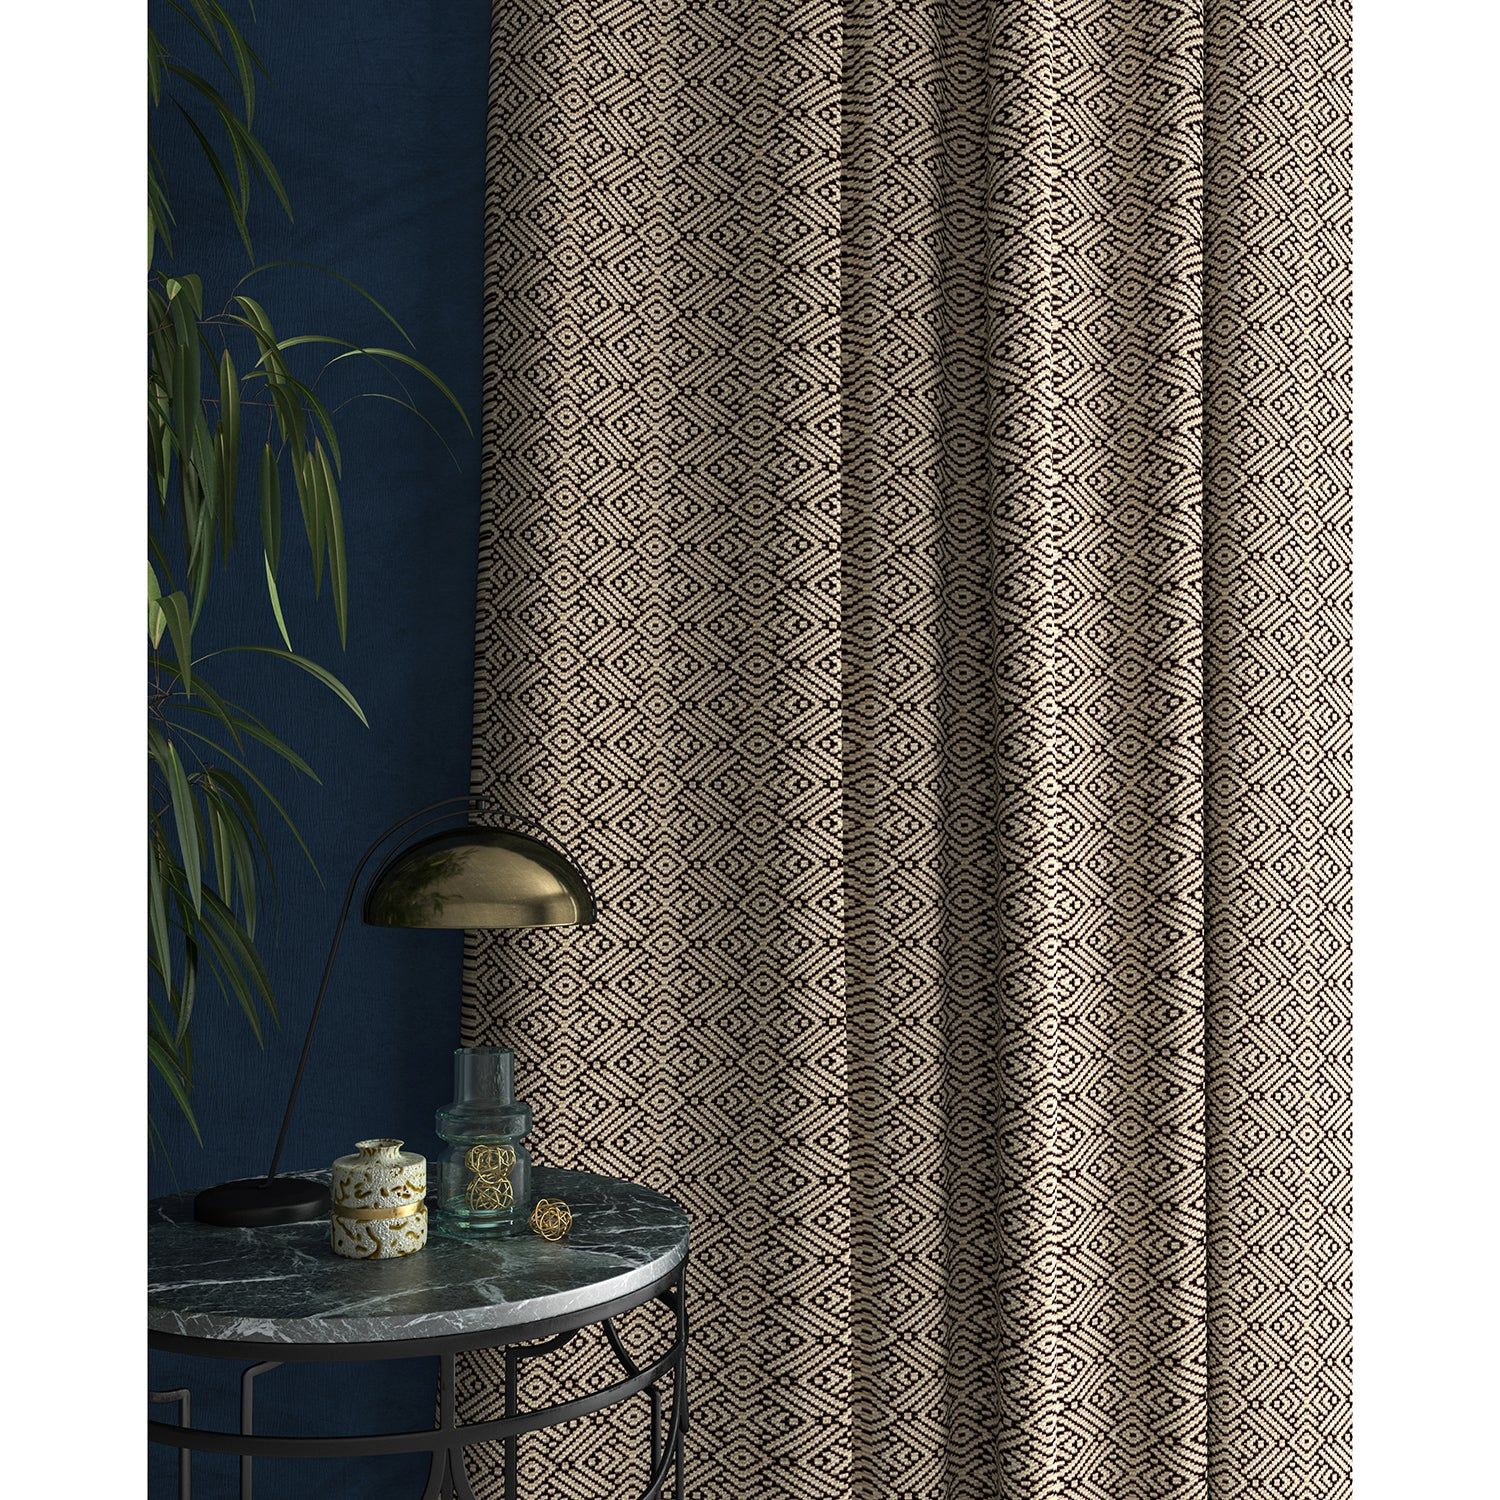 Curtains in a monochrome geometric weave fabric